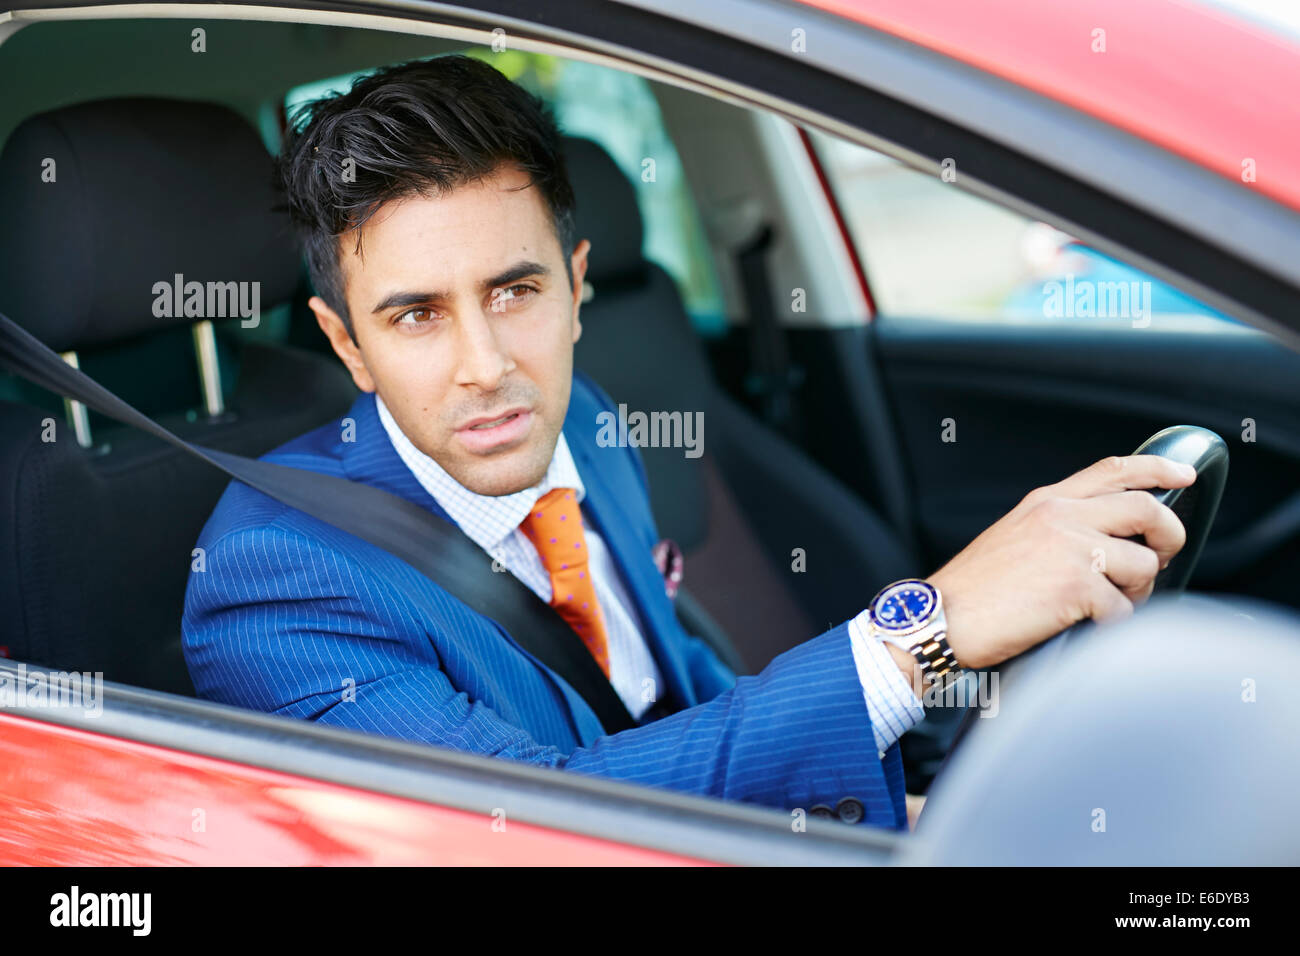 Man gesturing whilst driving car - Stock Image